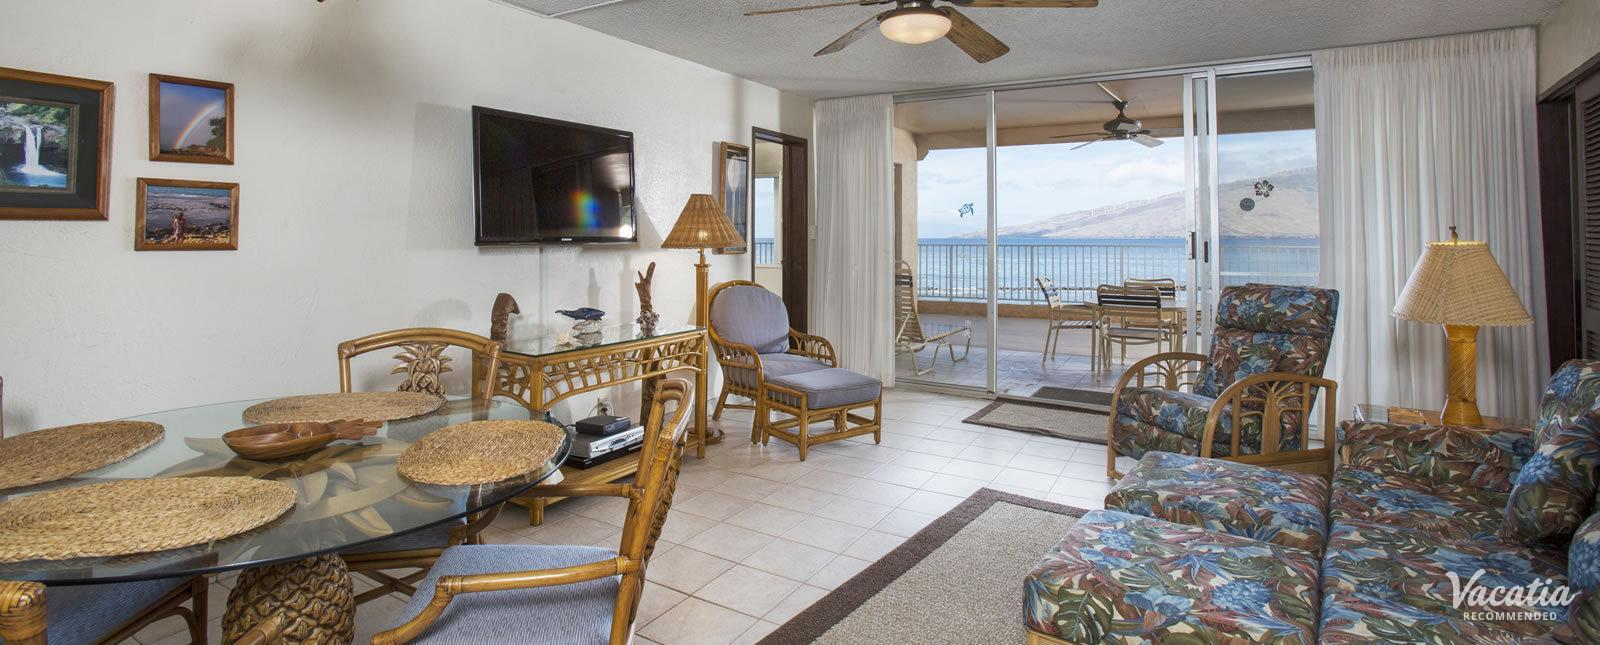 Menehune Shores condo rentals views